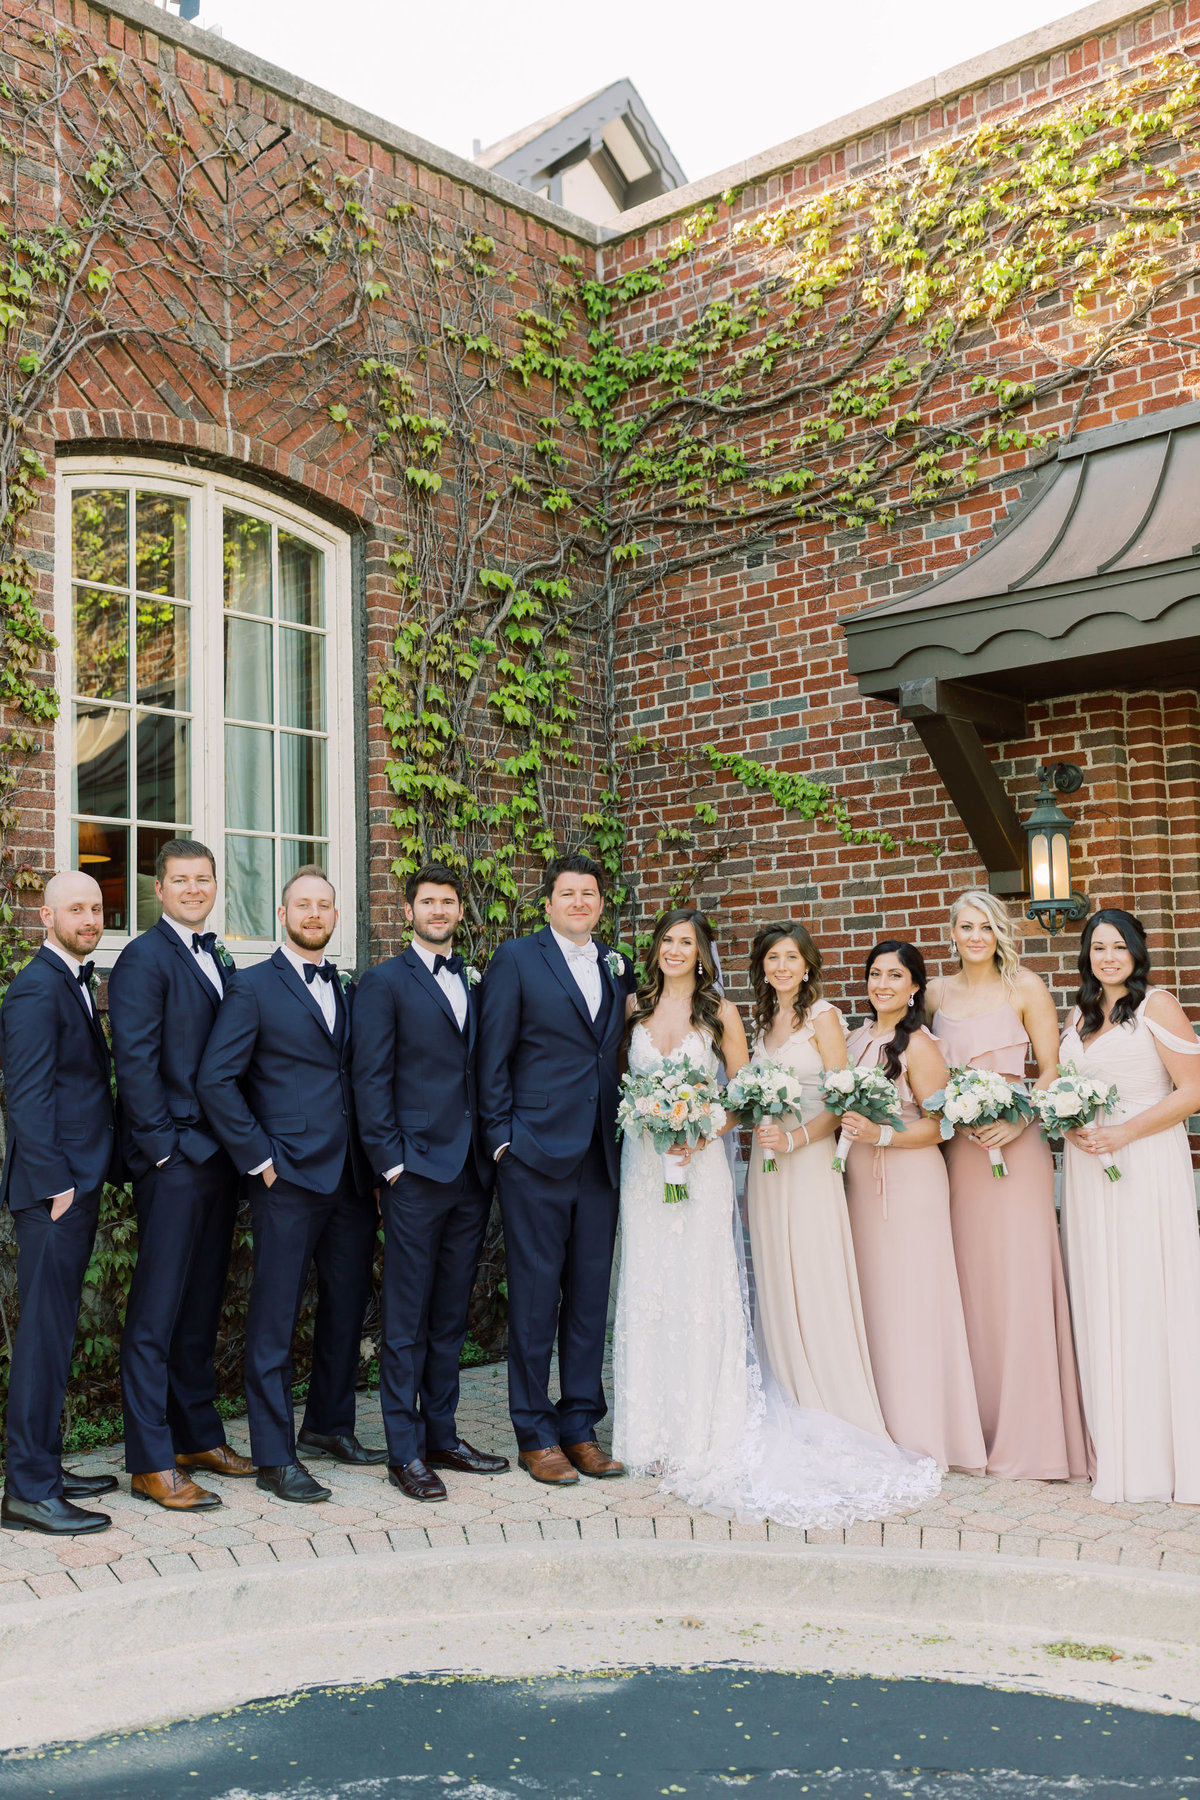 TiffaneyChildsPhotography-ChicagoWeddingPhotographer-Chloe+Jon-HinsdaleCountryClubWedding-BridalParty-8